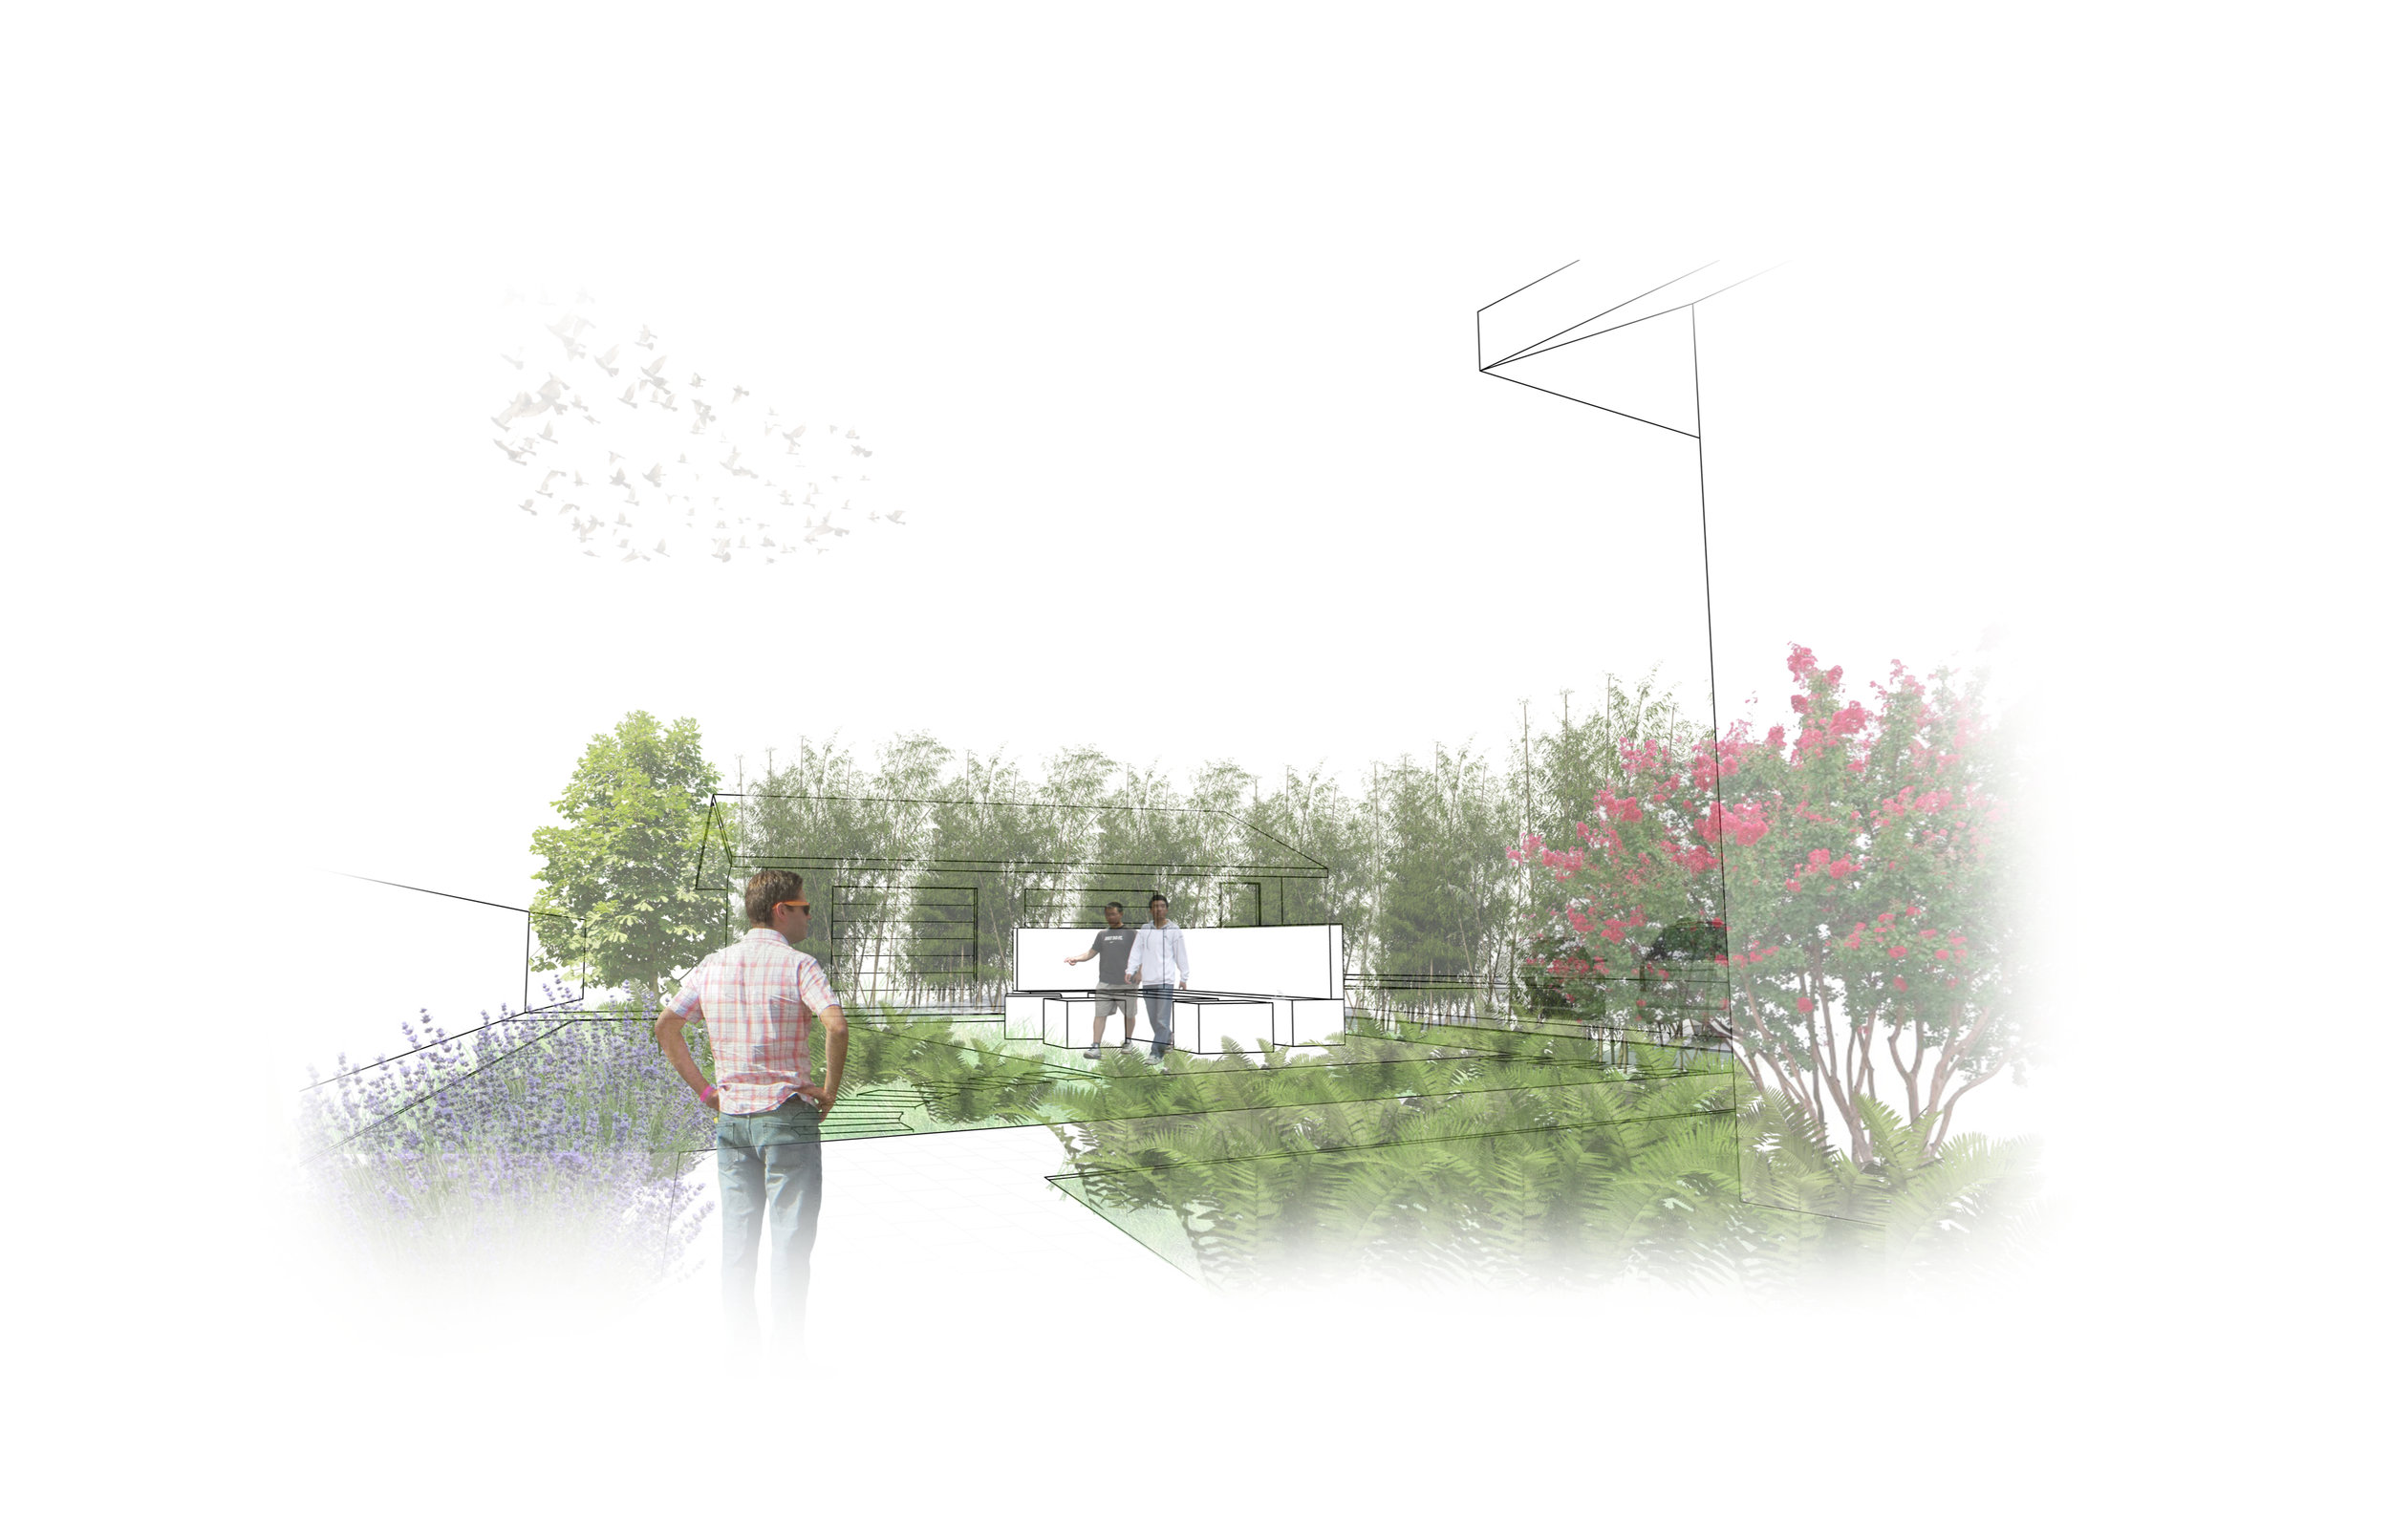 A schematic rendering helped the owner understand the potential of their large open space.